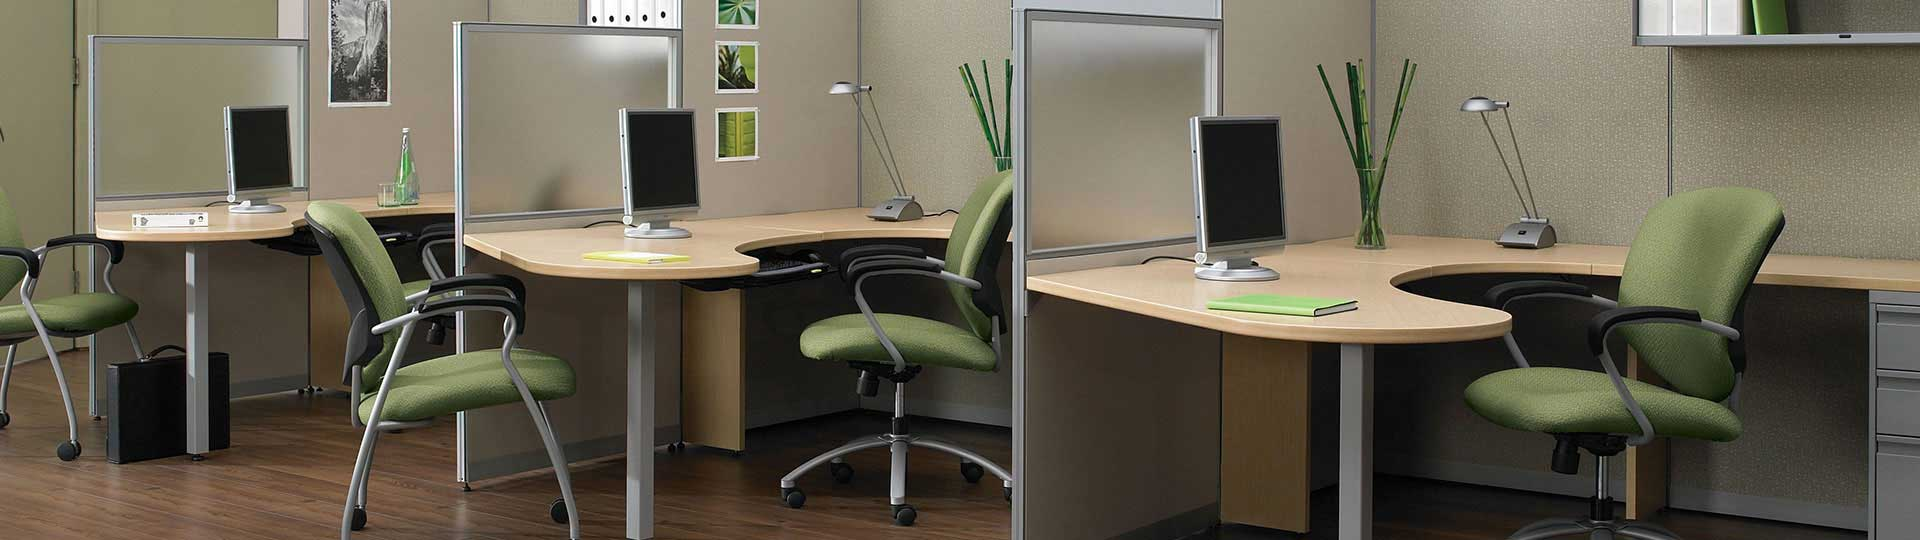 New And Used Office Cubicles For Offices In The Woodlands, TX